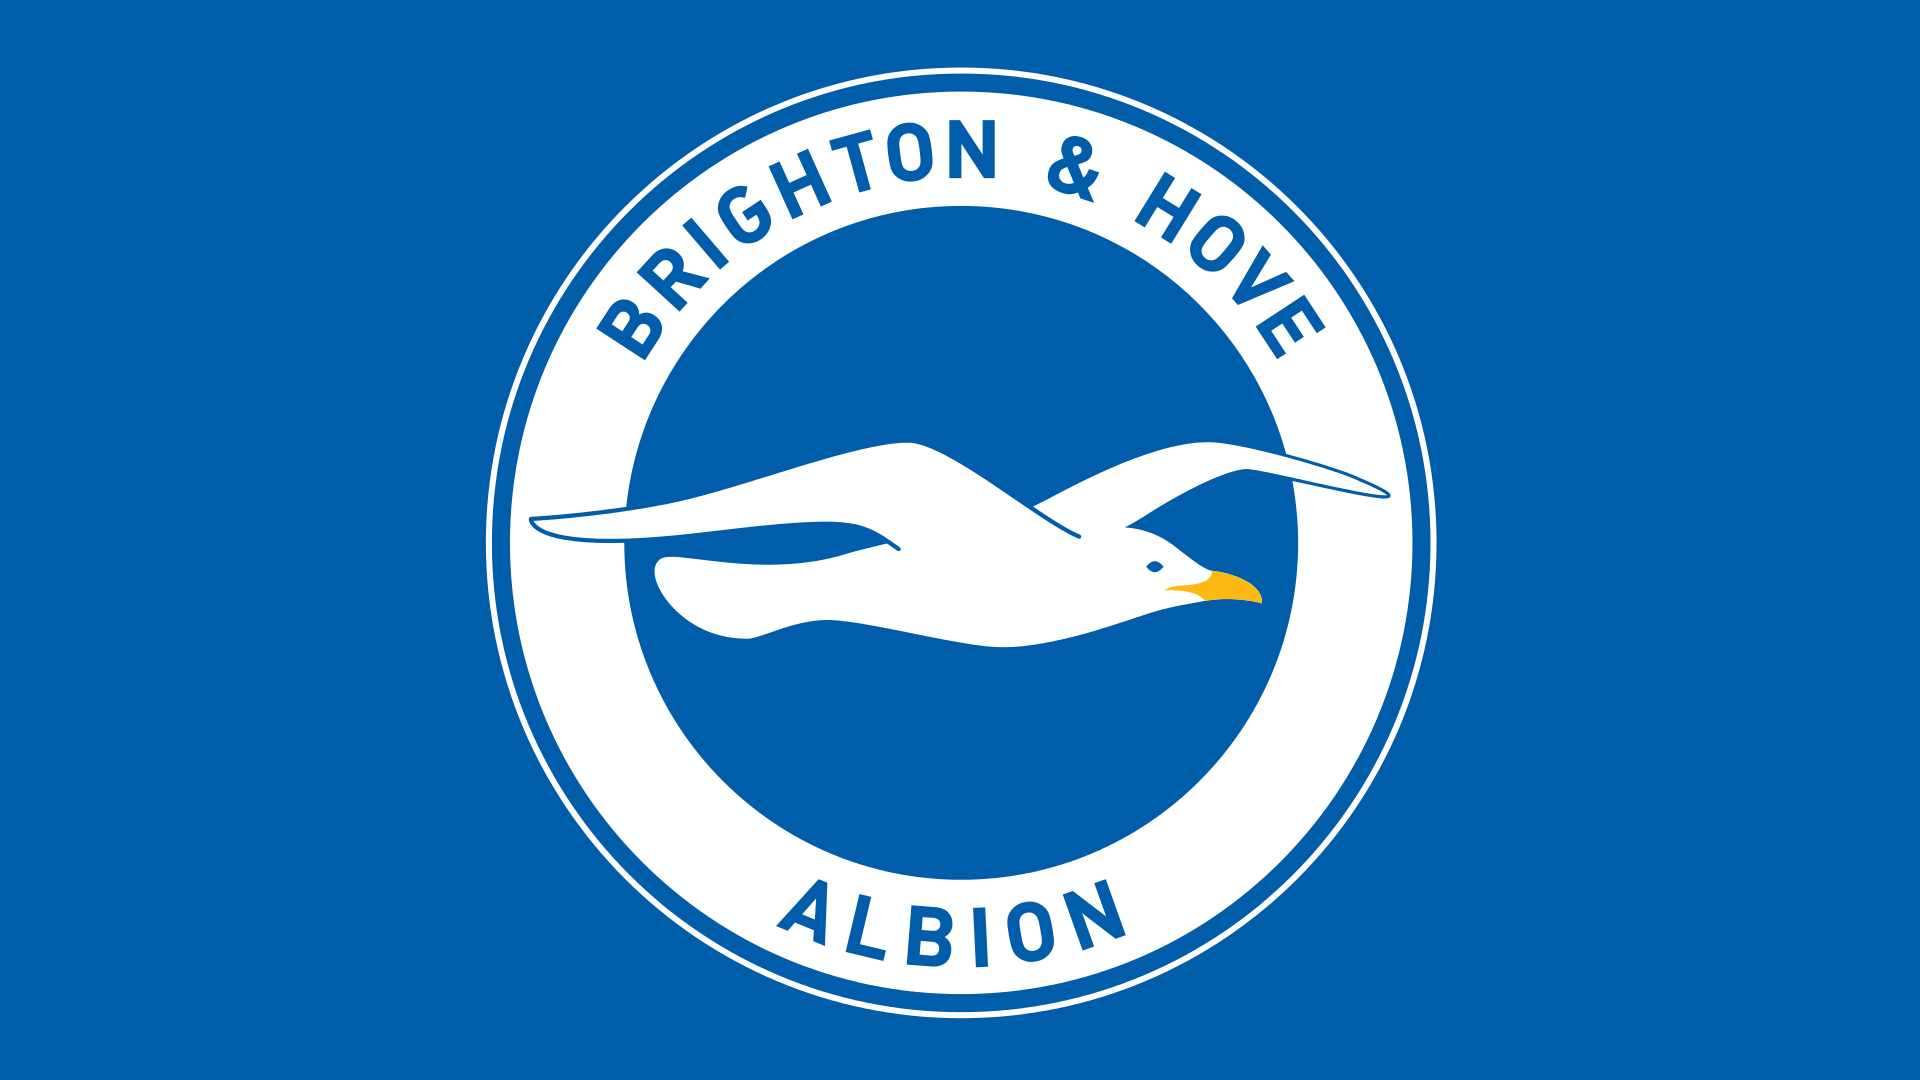 Meaning Brighton & Hove Albion logo and symbol.